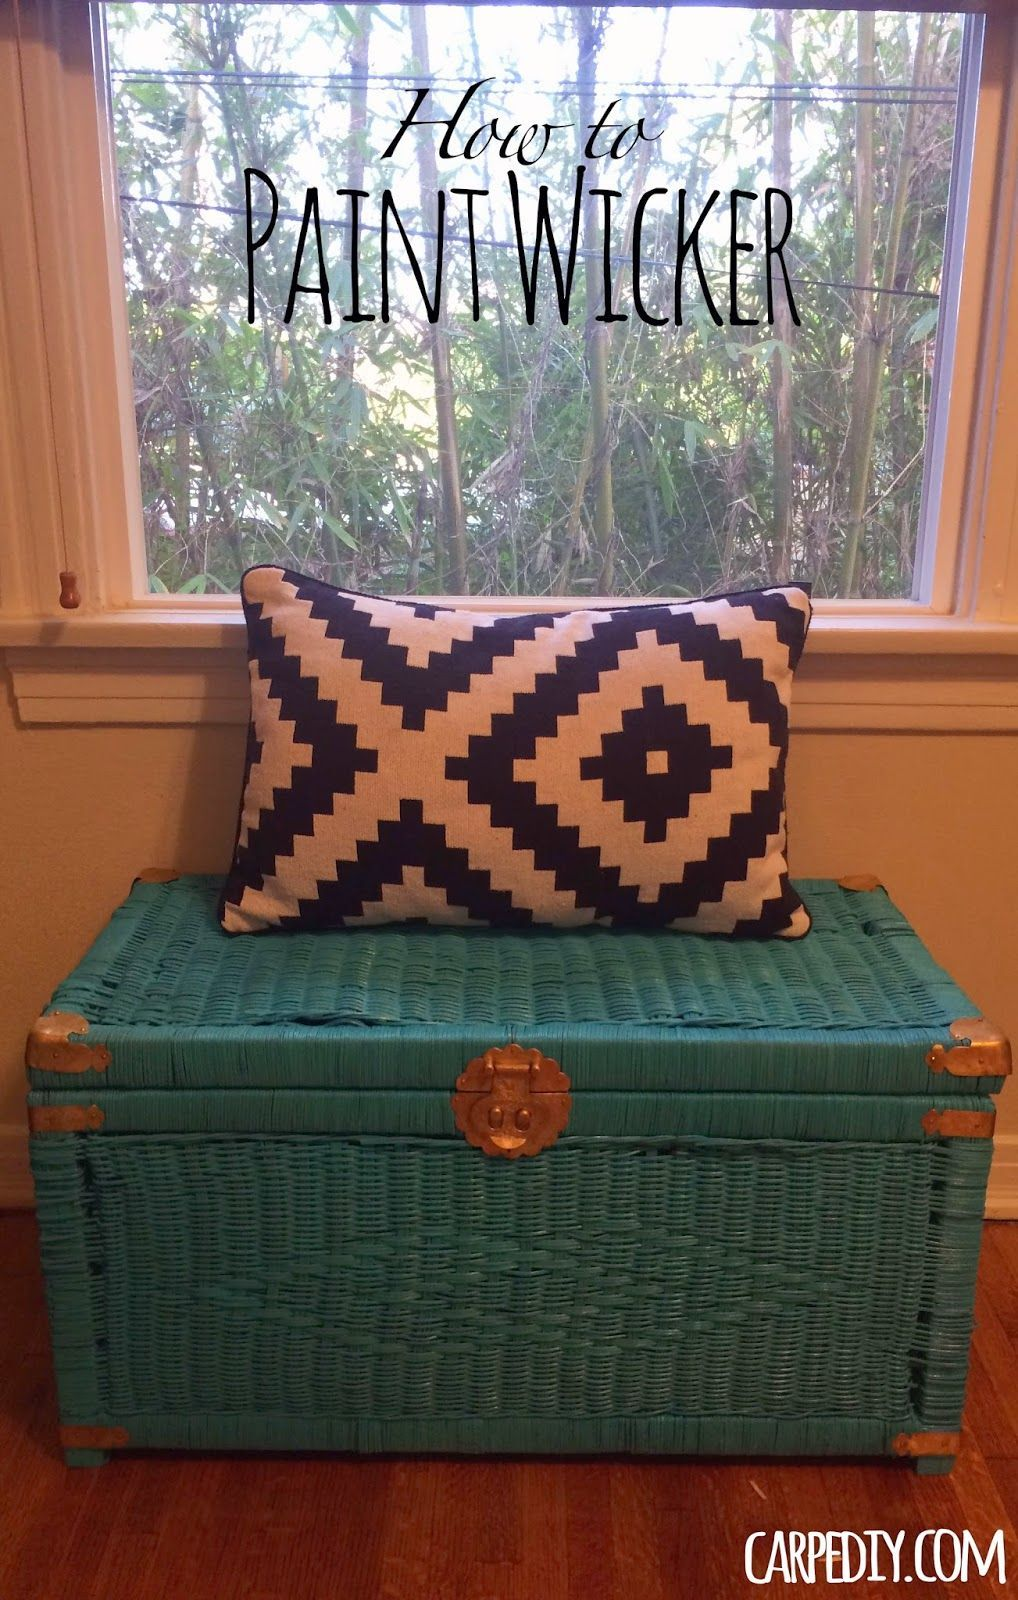 Learn How Easy It Is To Paint Wicker This Is My First Post On Carpediy Com Hope You Enjoy Painted Wicker Painting Wicker Furniture Wicker Bedroom [ 1600 x 1018 Pixel ]